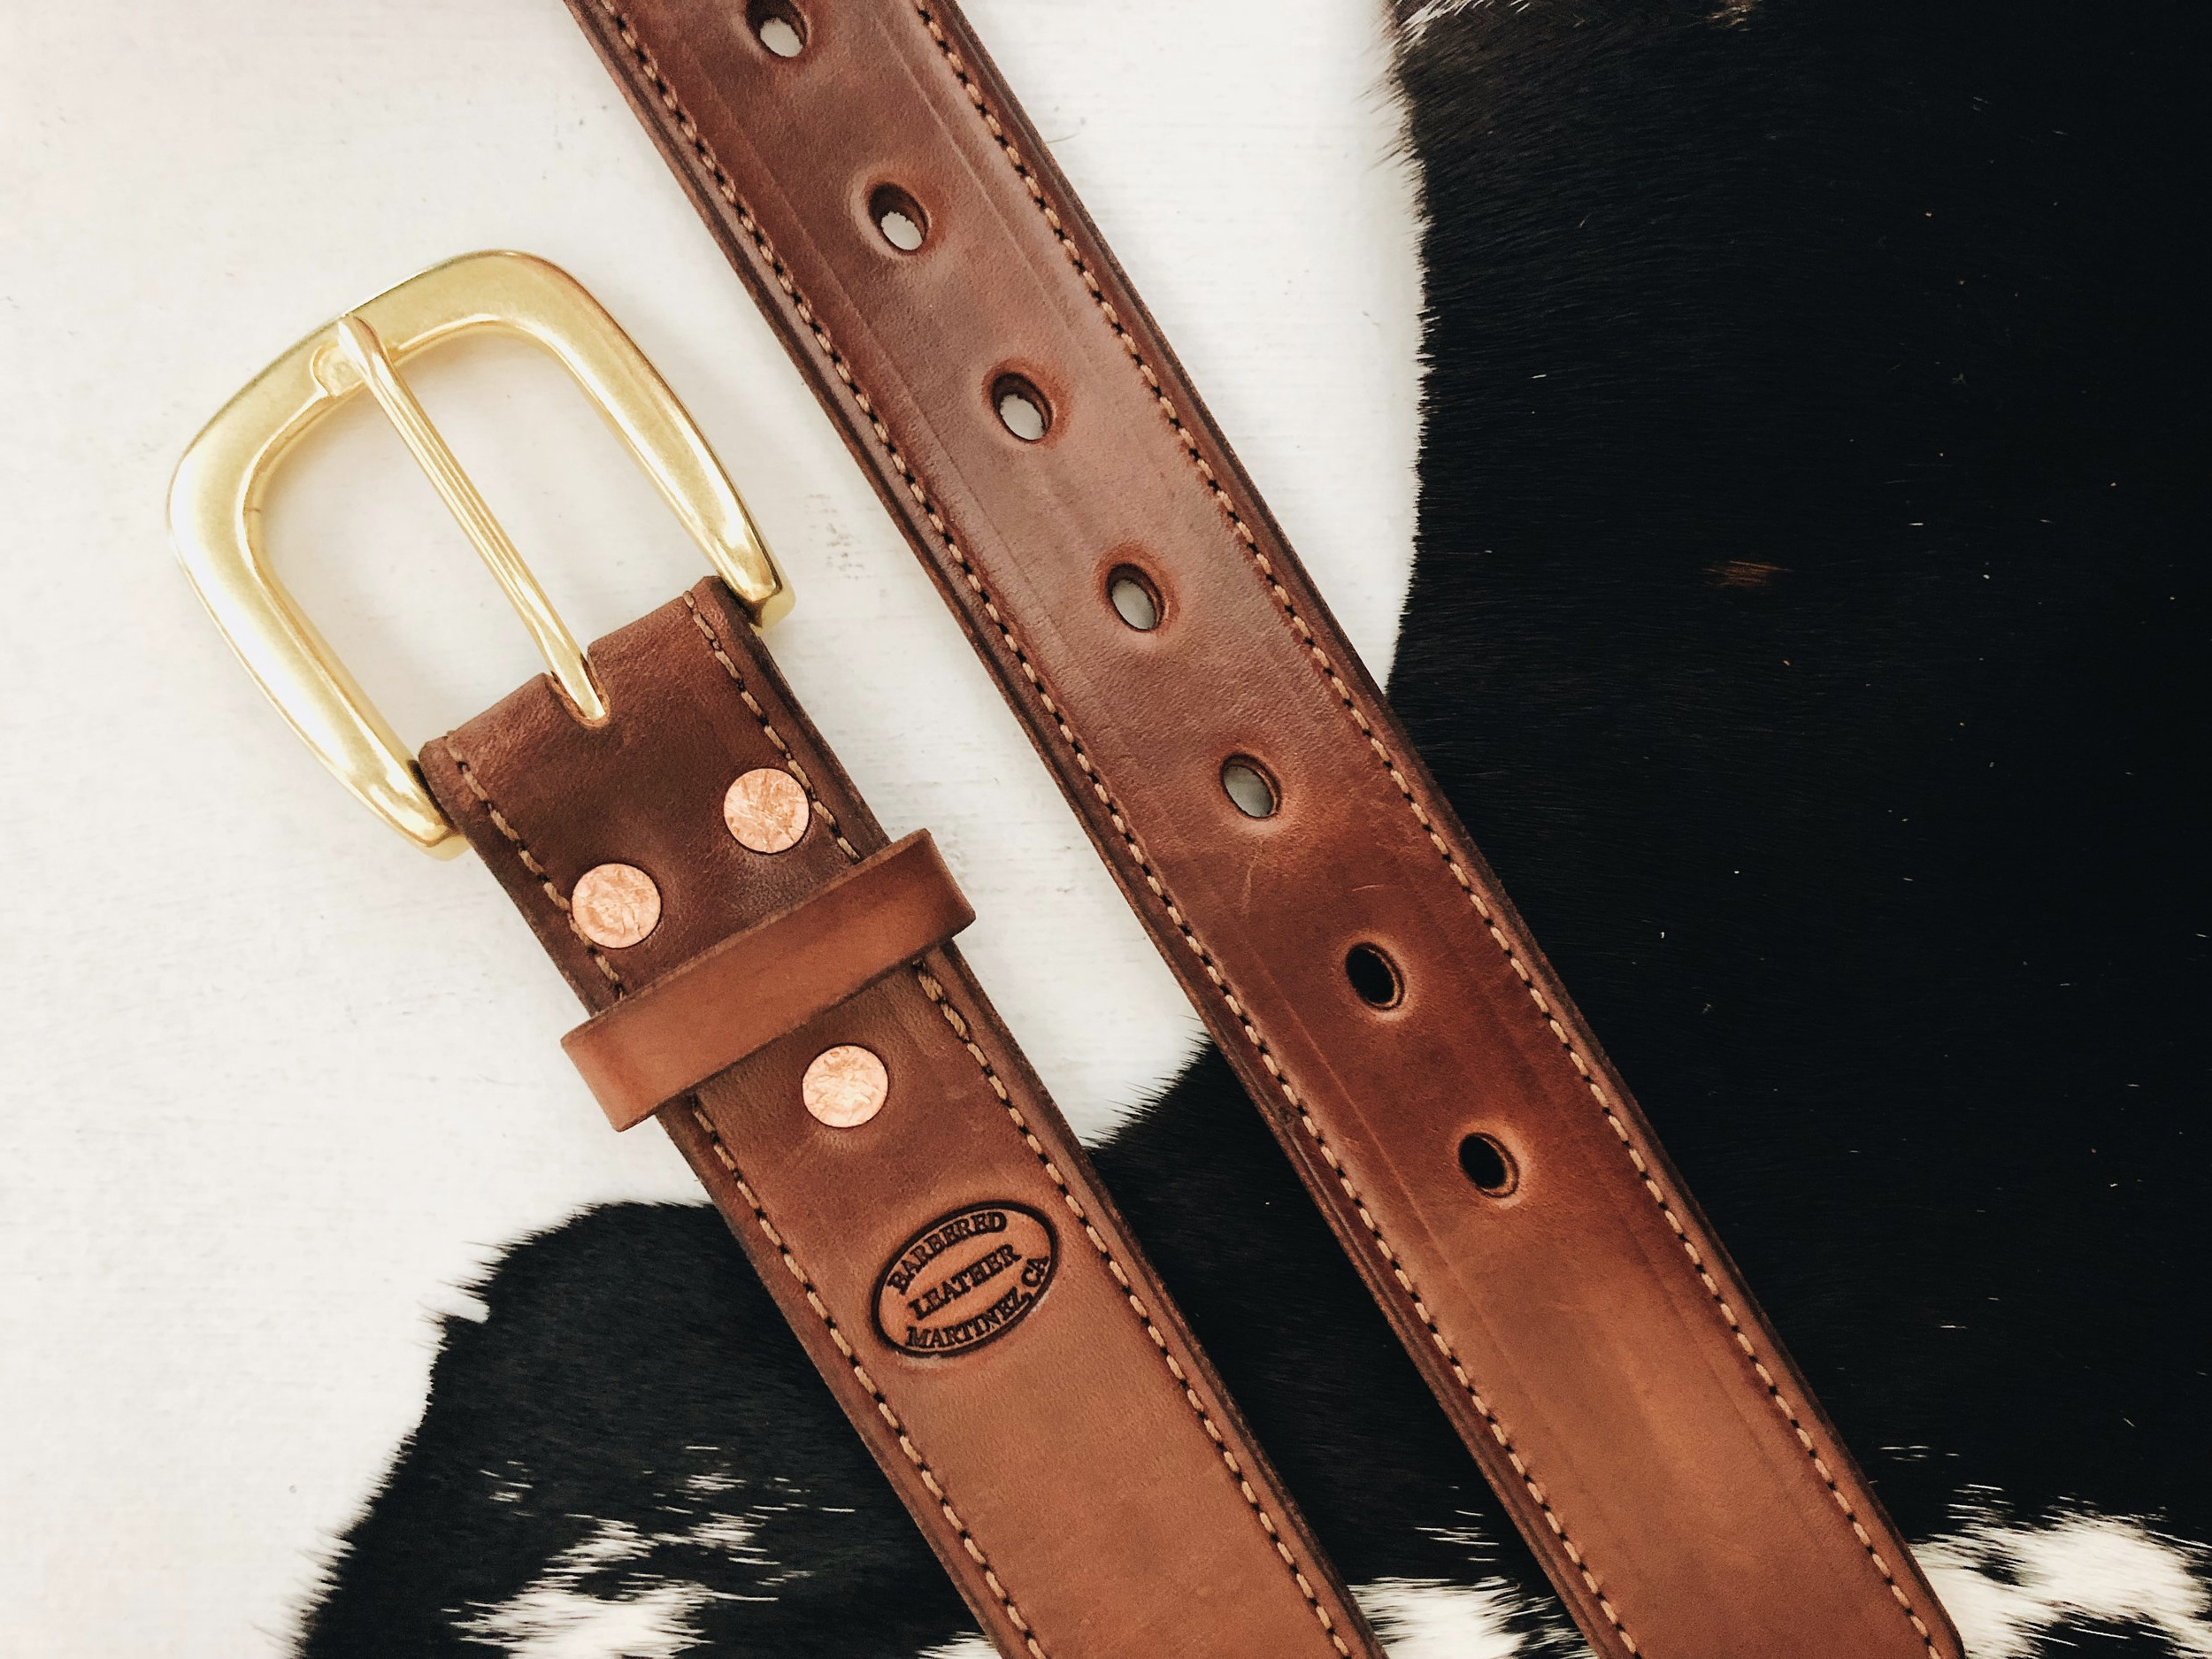 A  Brown  standard belt with a  Brown Stitch  and a  Heel Bar Round buckle in Brass .  Rivets  as the fastener.